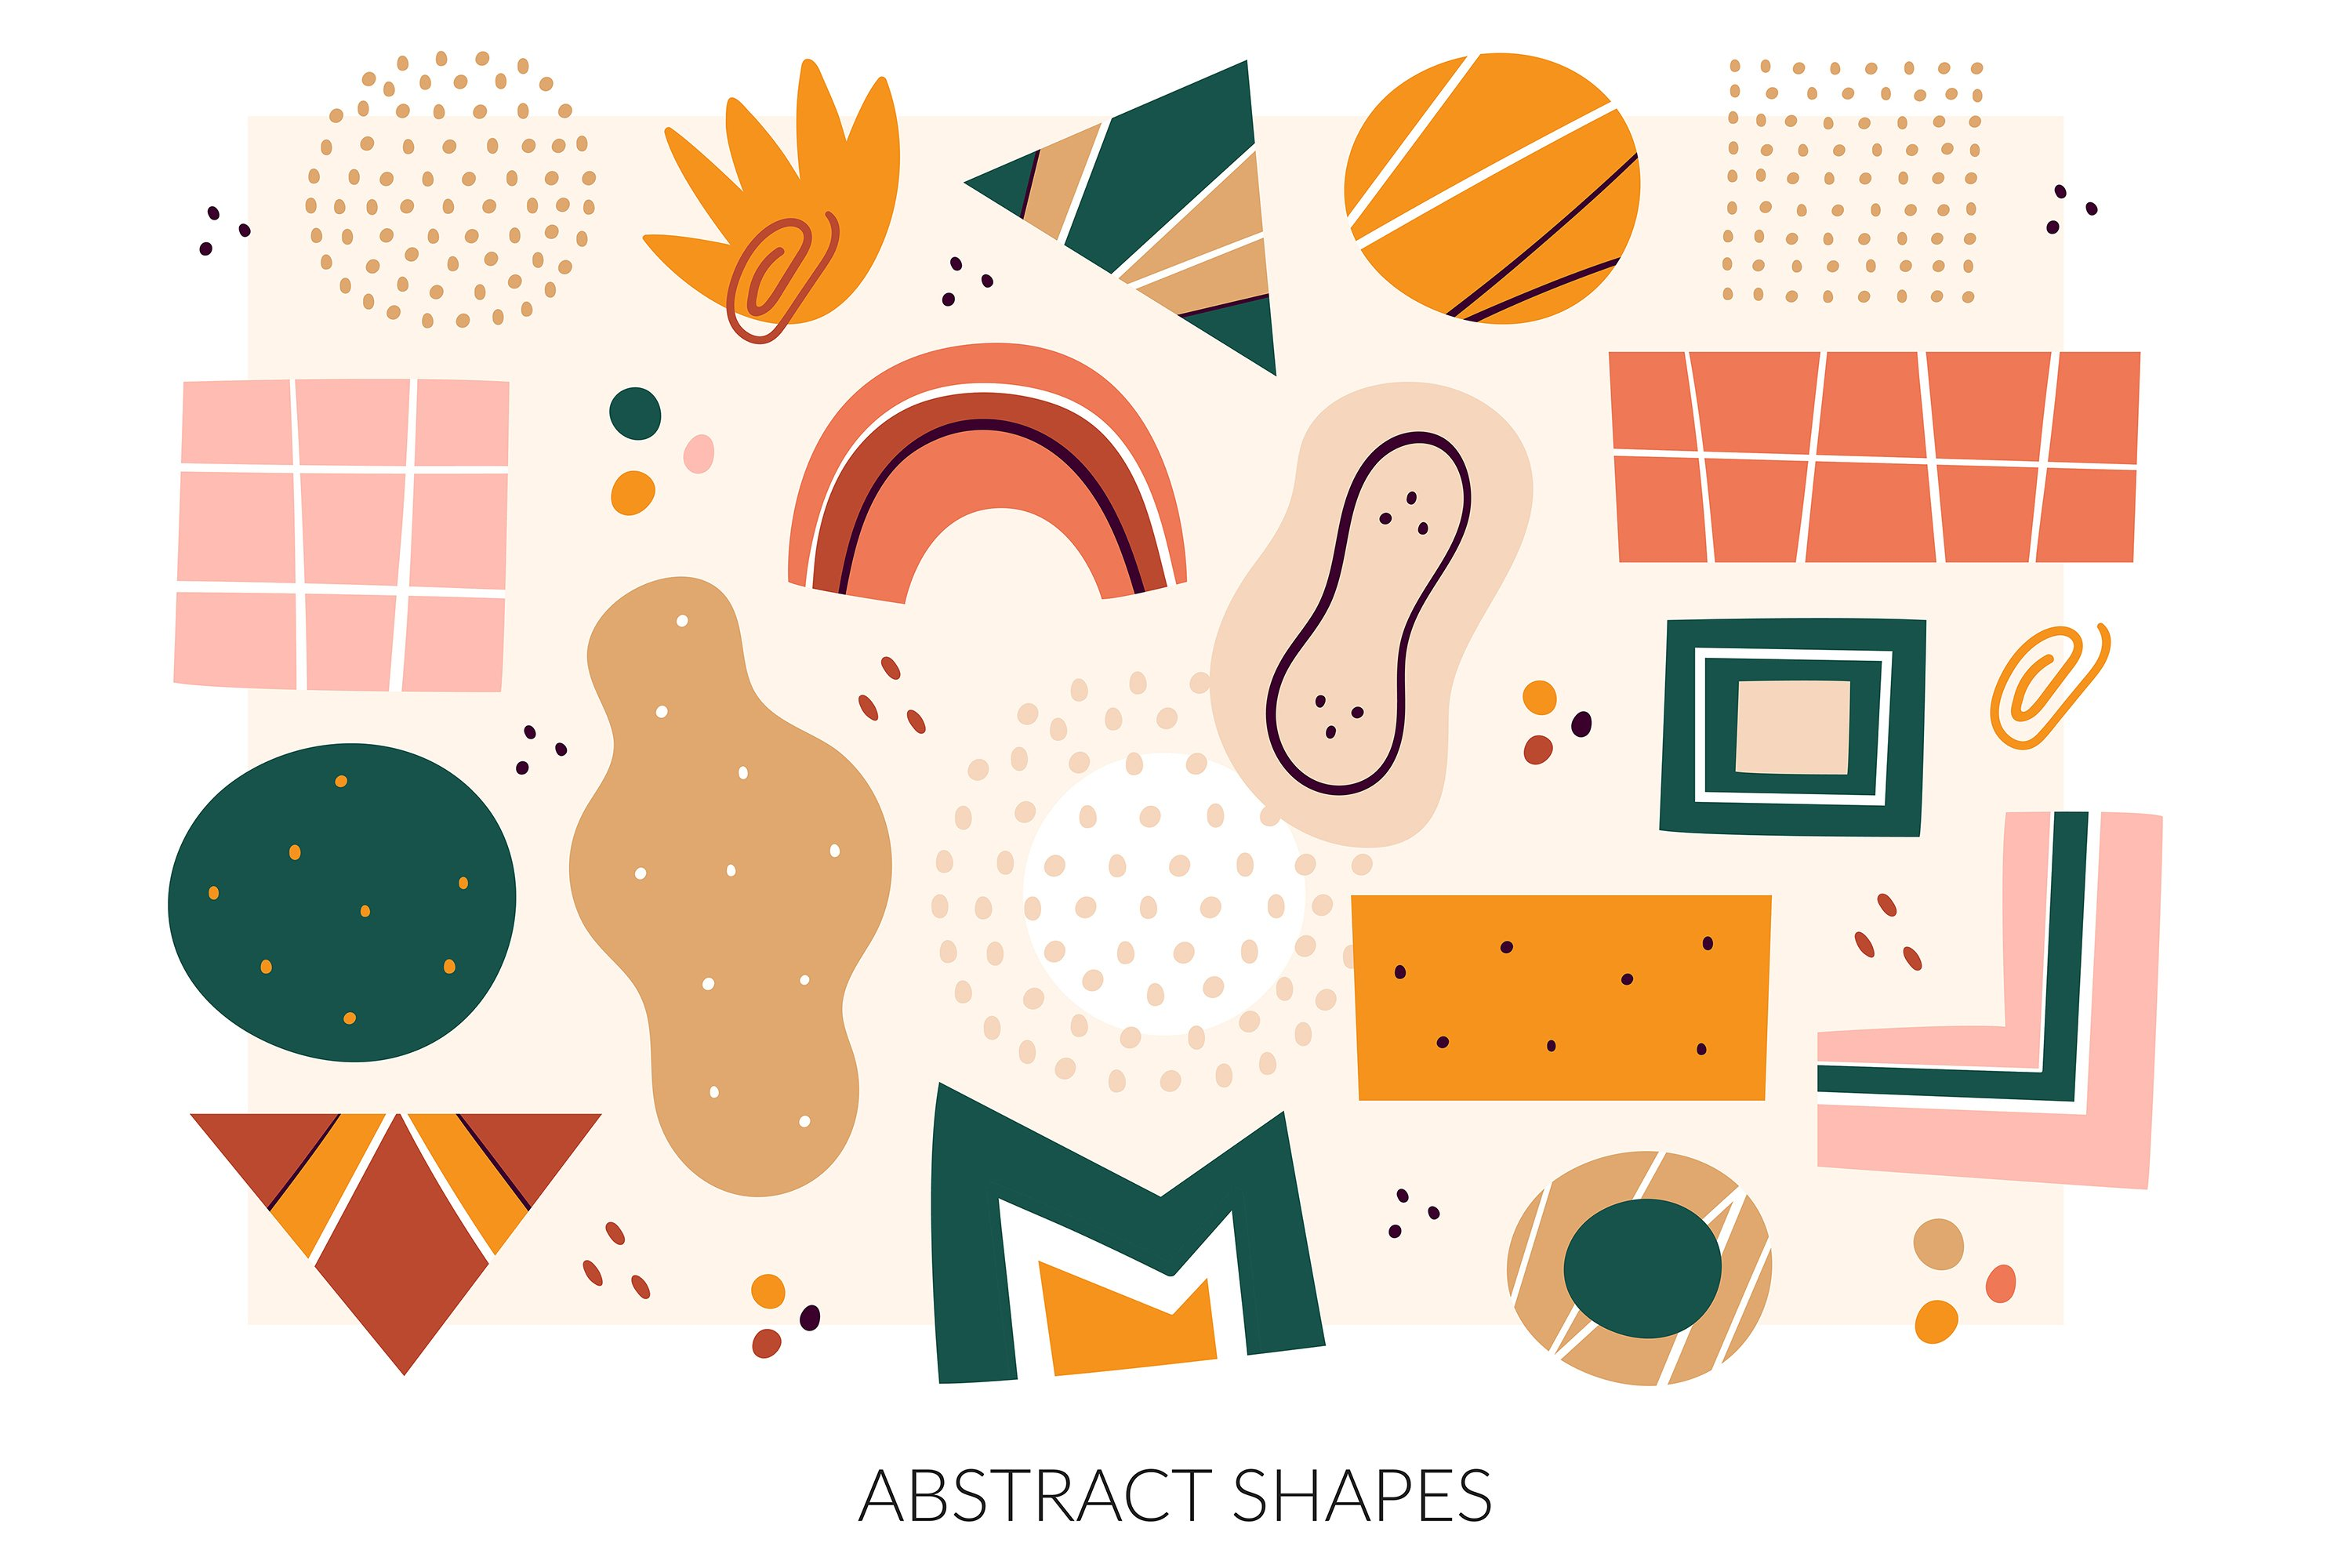 Abstract Shapes Clipart Digital Prints Hand Drawn Vector 561869 Elements Design Bundles We hope you enjoy our growing collection of hd images to use as a background or home screen. abstract shapes clipart digital prints hand drawn vector